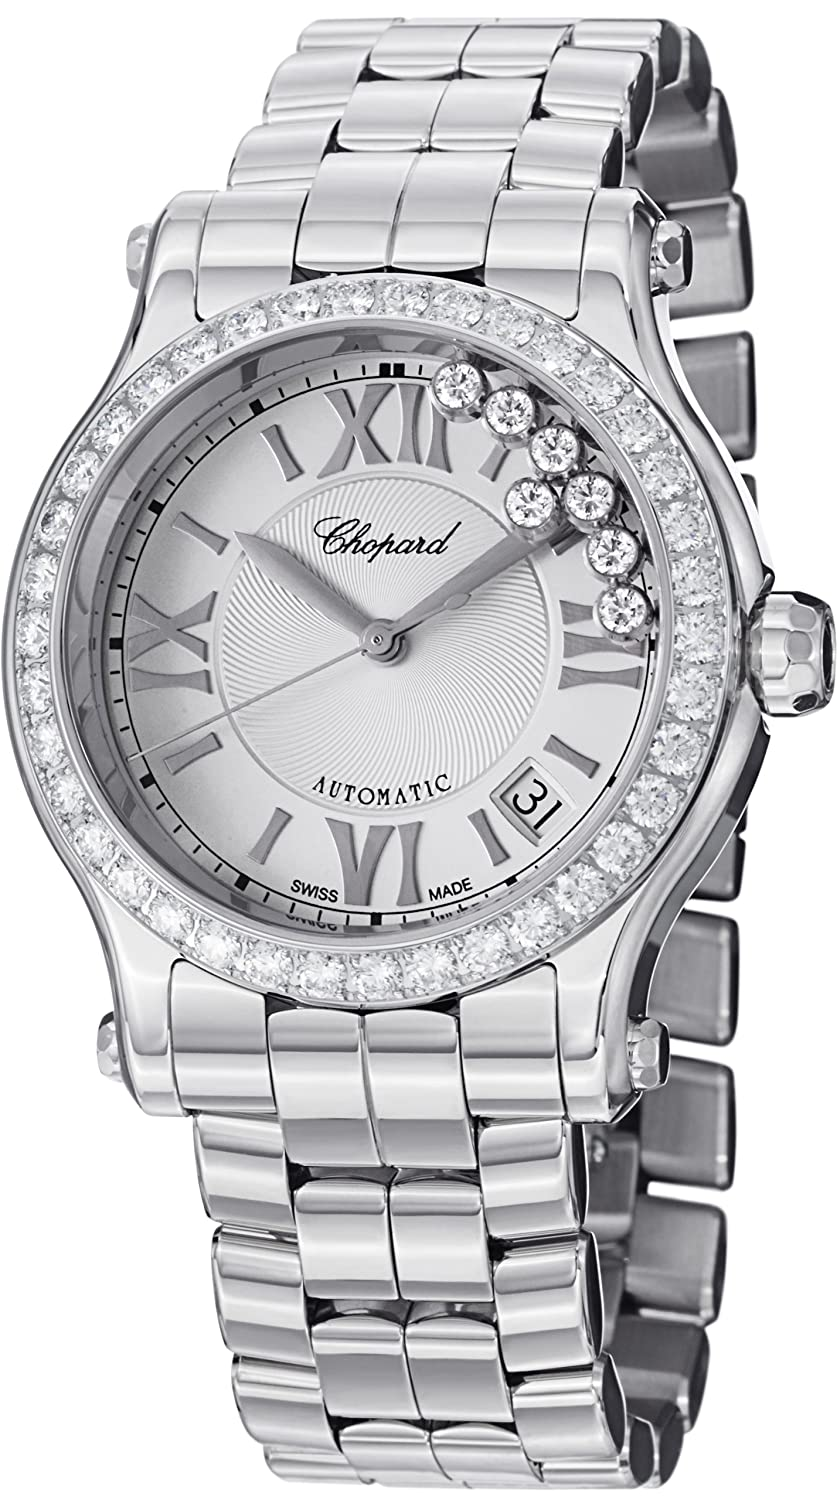 e28e3cab5 Amazon.com: Chopard Happy Sport Round Ladies Stainless Steel Automatic  Diamond Bezel Watch 278559-3004: Chopard: Watches